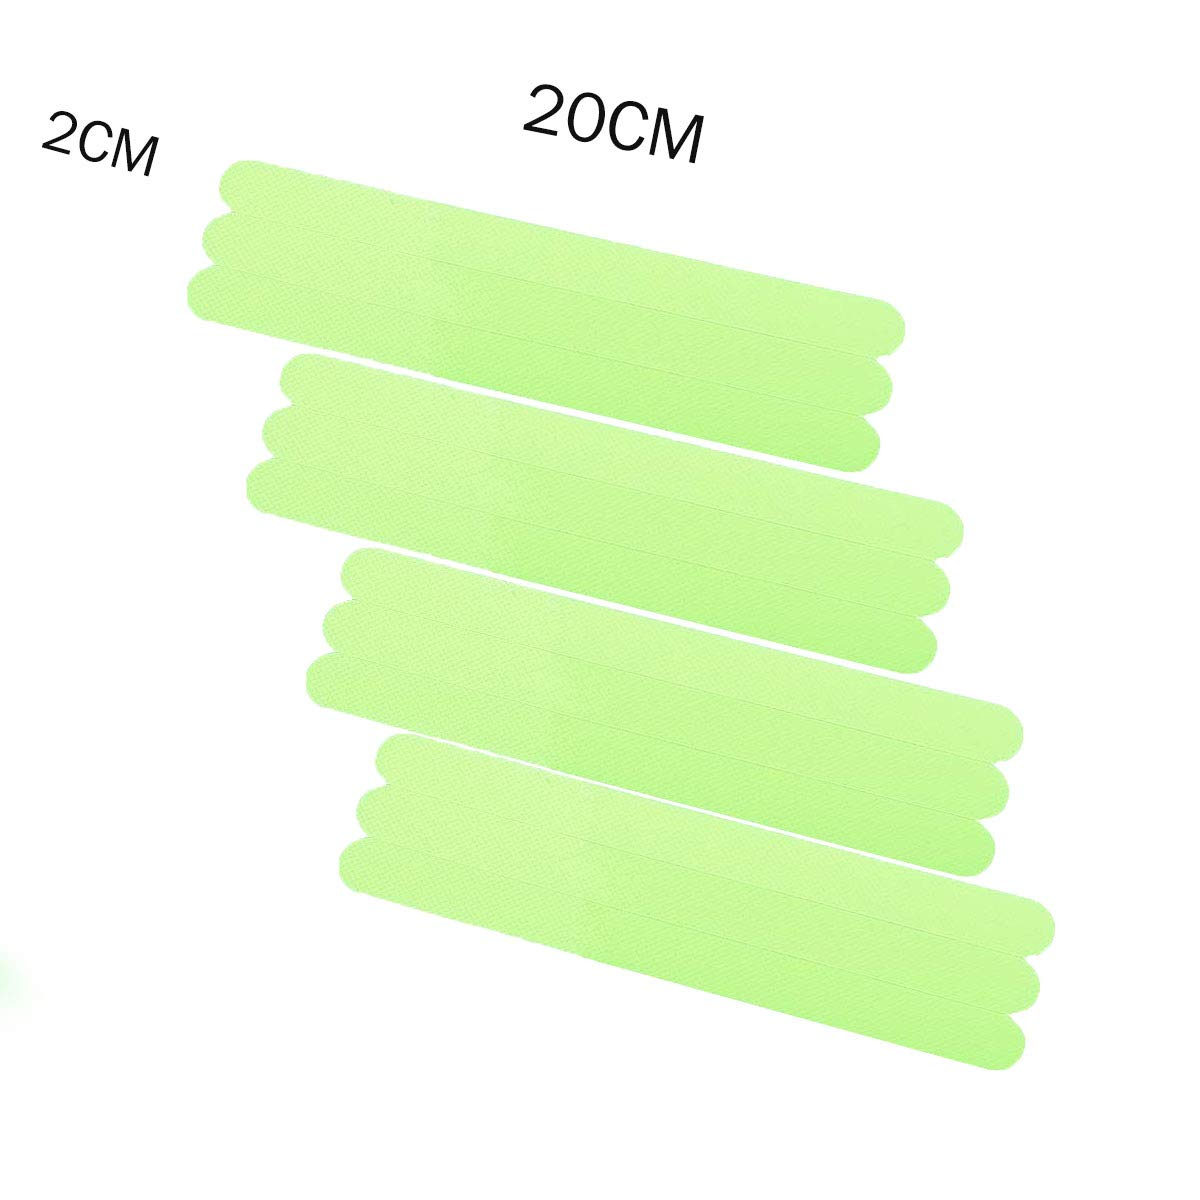 Anti-Slip Stickers Luminous Non-Slip Safety Strips Bathtubs Floor Treads,Glow in The Dark Tape 24 pcs Adhesive Shower Slip Strip for Bath,Boats,Stairs,Swimming Pools,Health Clubs